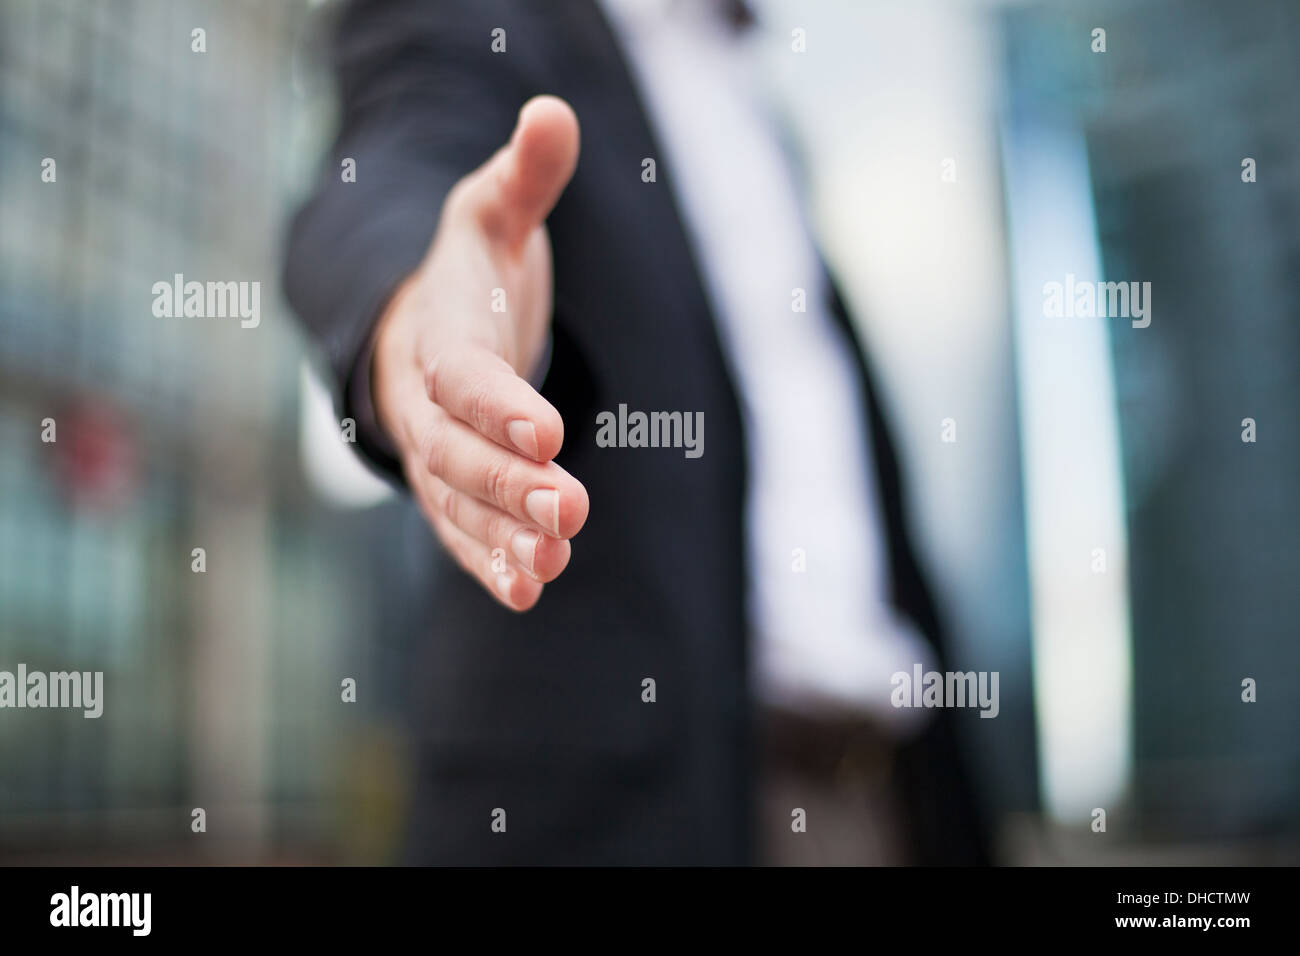 Businessman offering for handshake on office buildings background - Stock Image